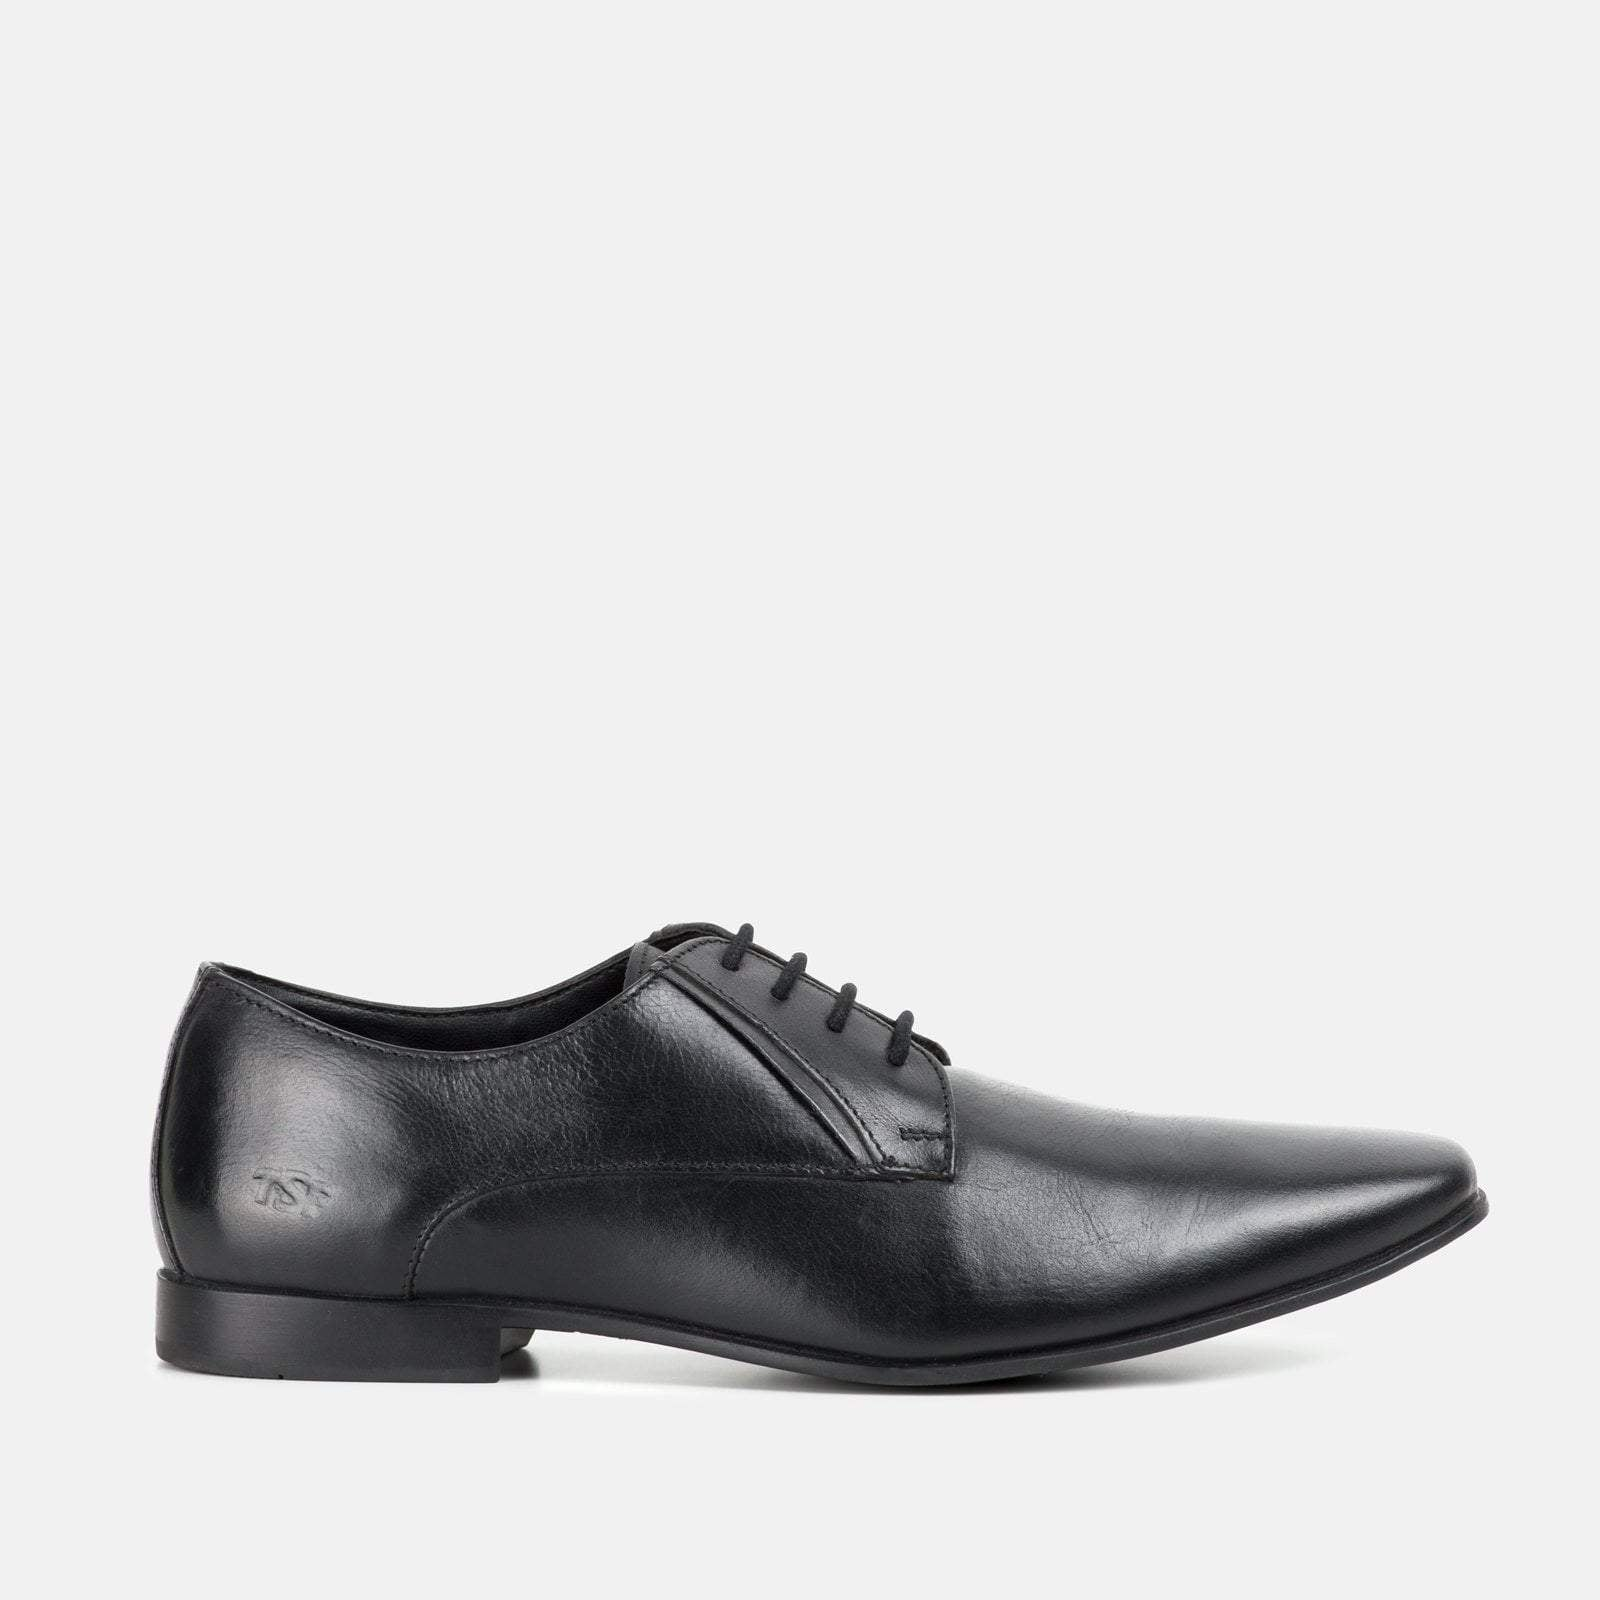 Redfoot Shoes UK 6 / EURO 39 / US 7 / Black / Leather BOND BLACK